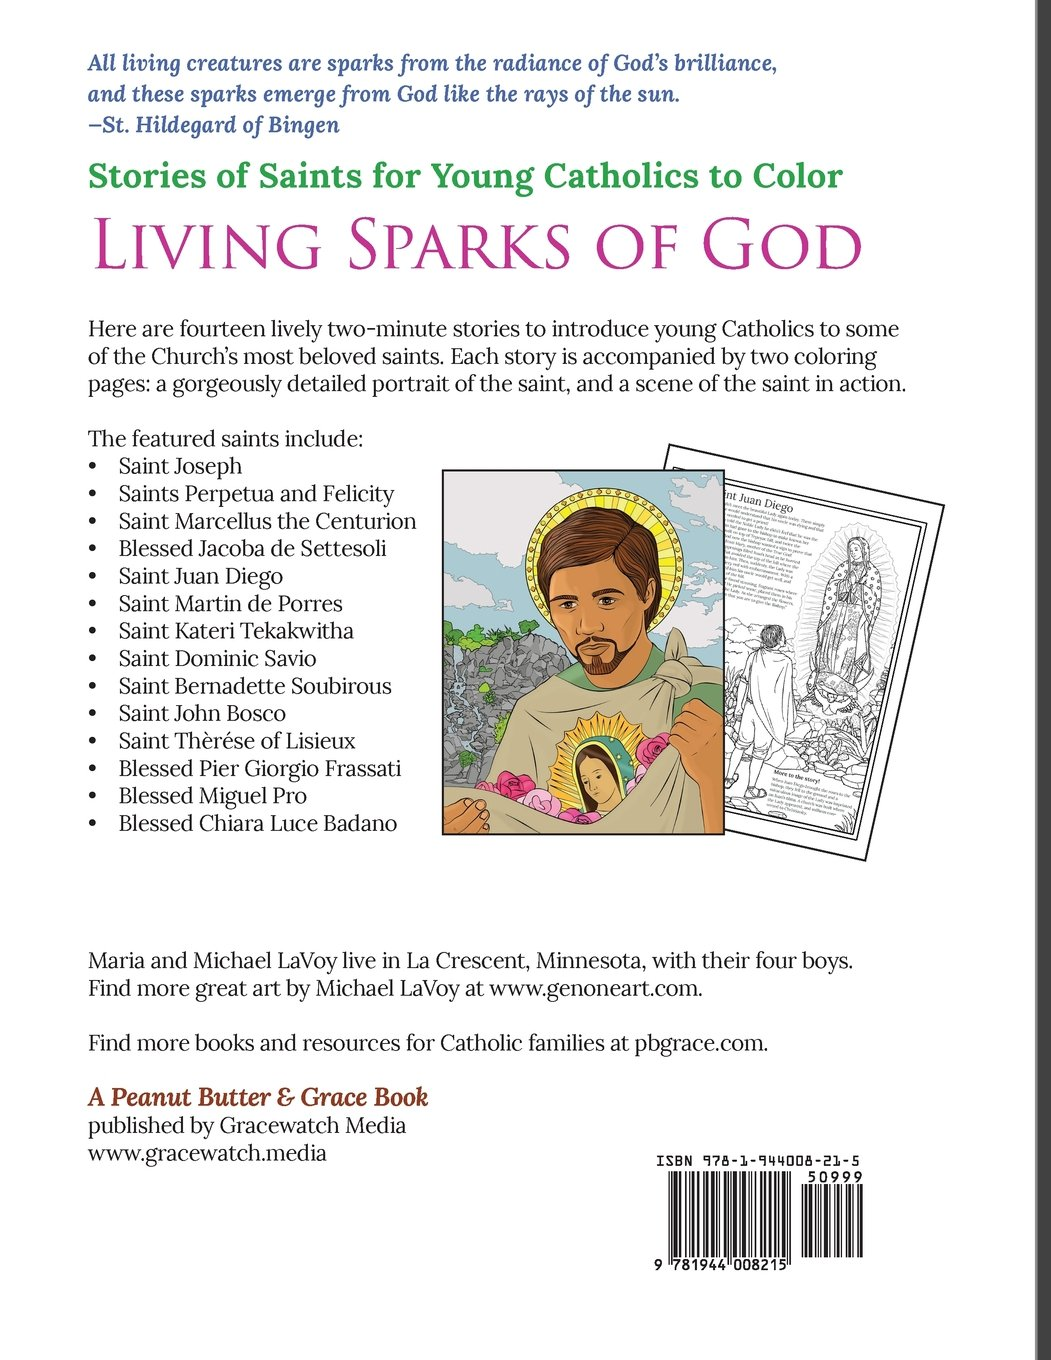 living sparks of god stories of saints for young catholics to